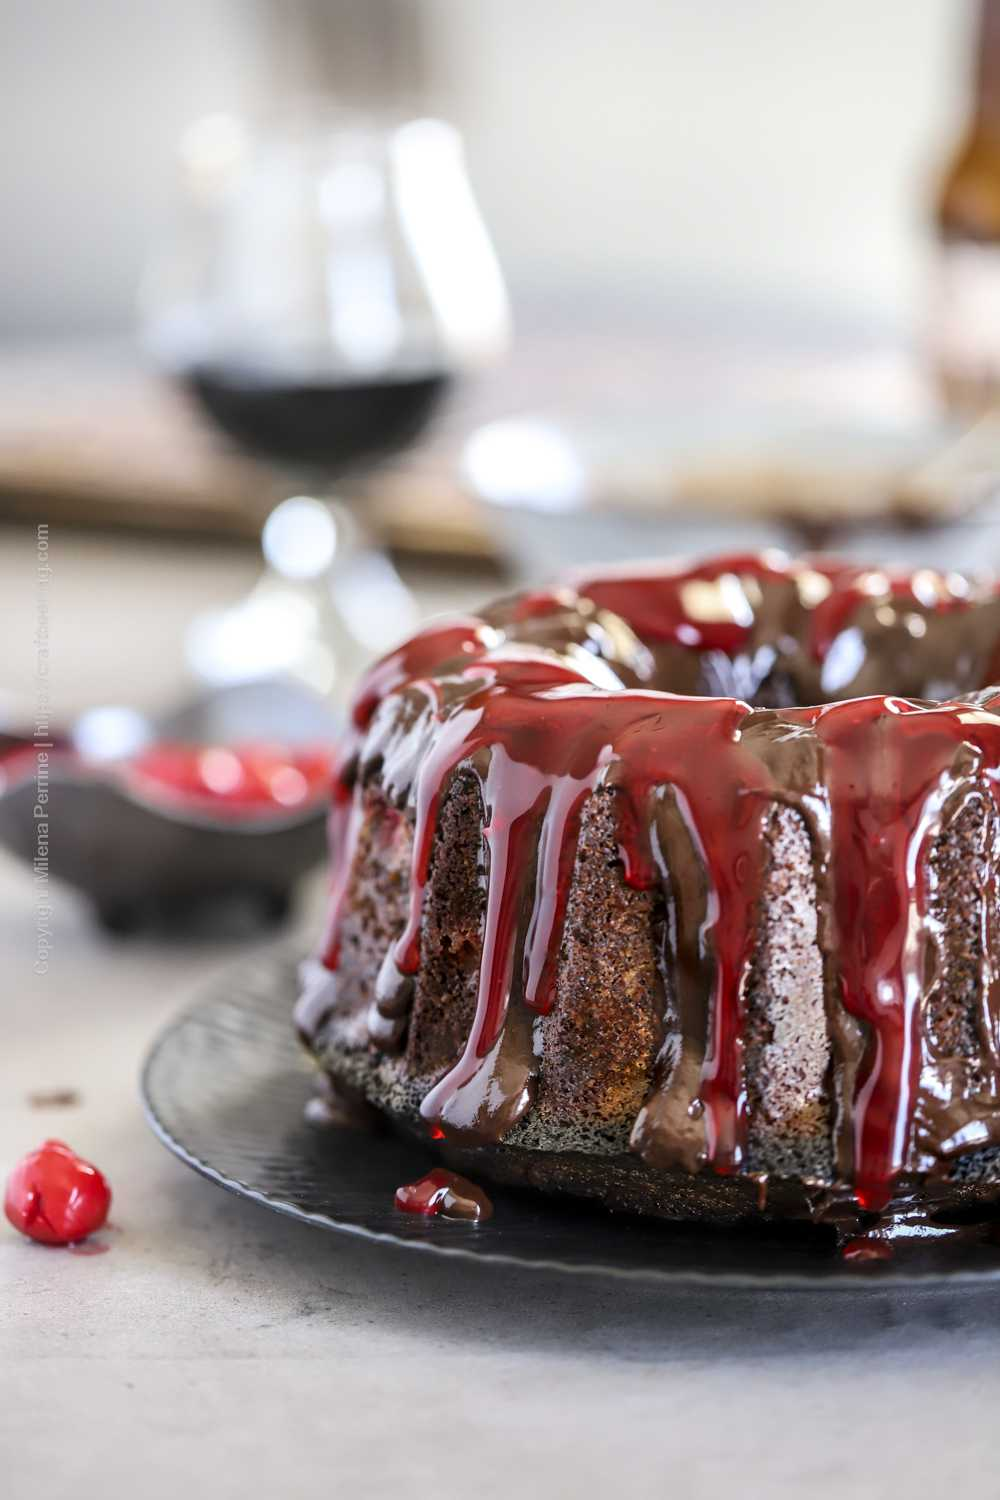 Cherry chocolate bundt cake topped with cherry pie filling juice and chocolate ganache.